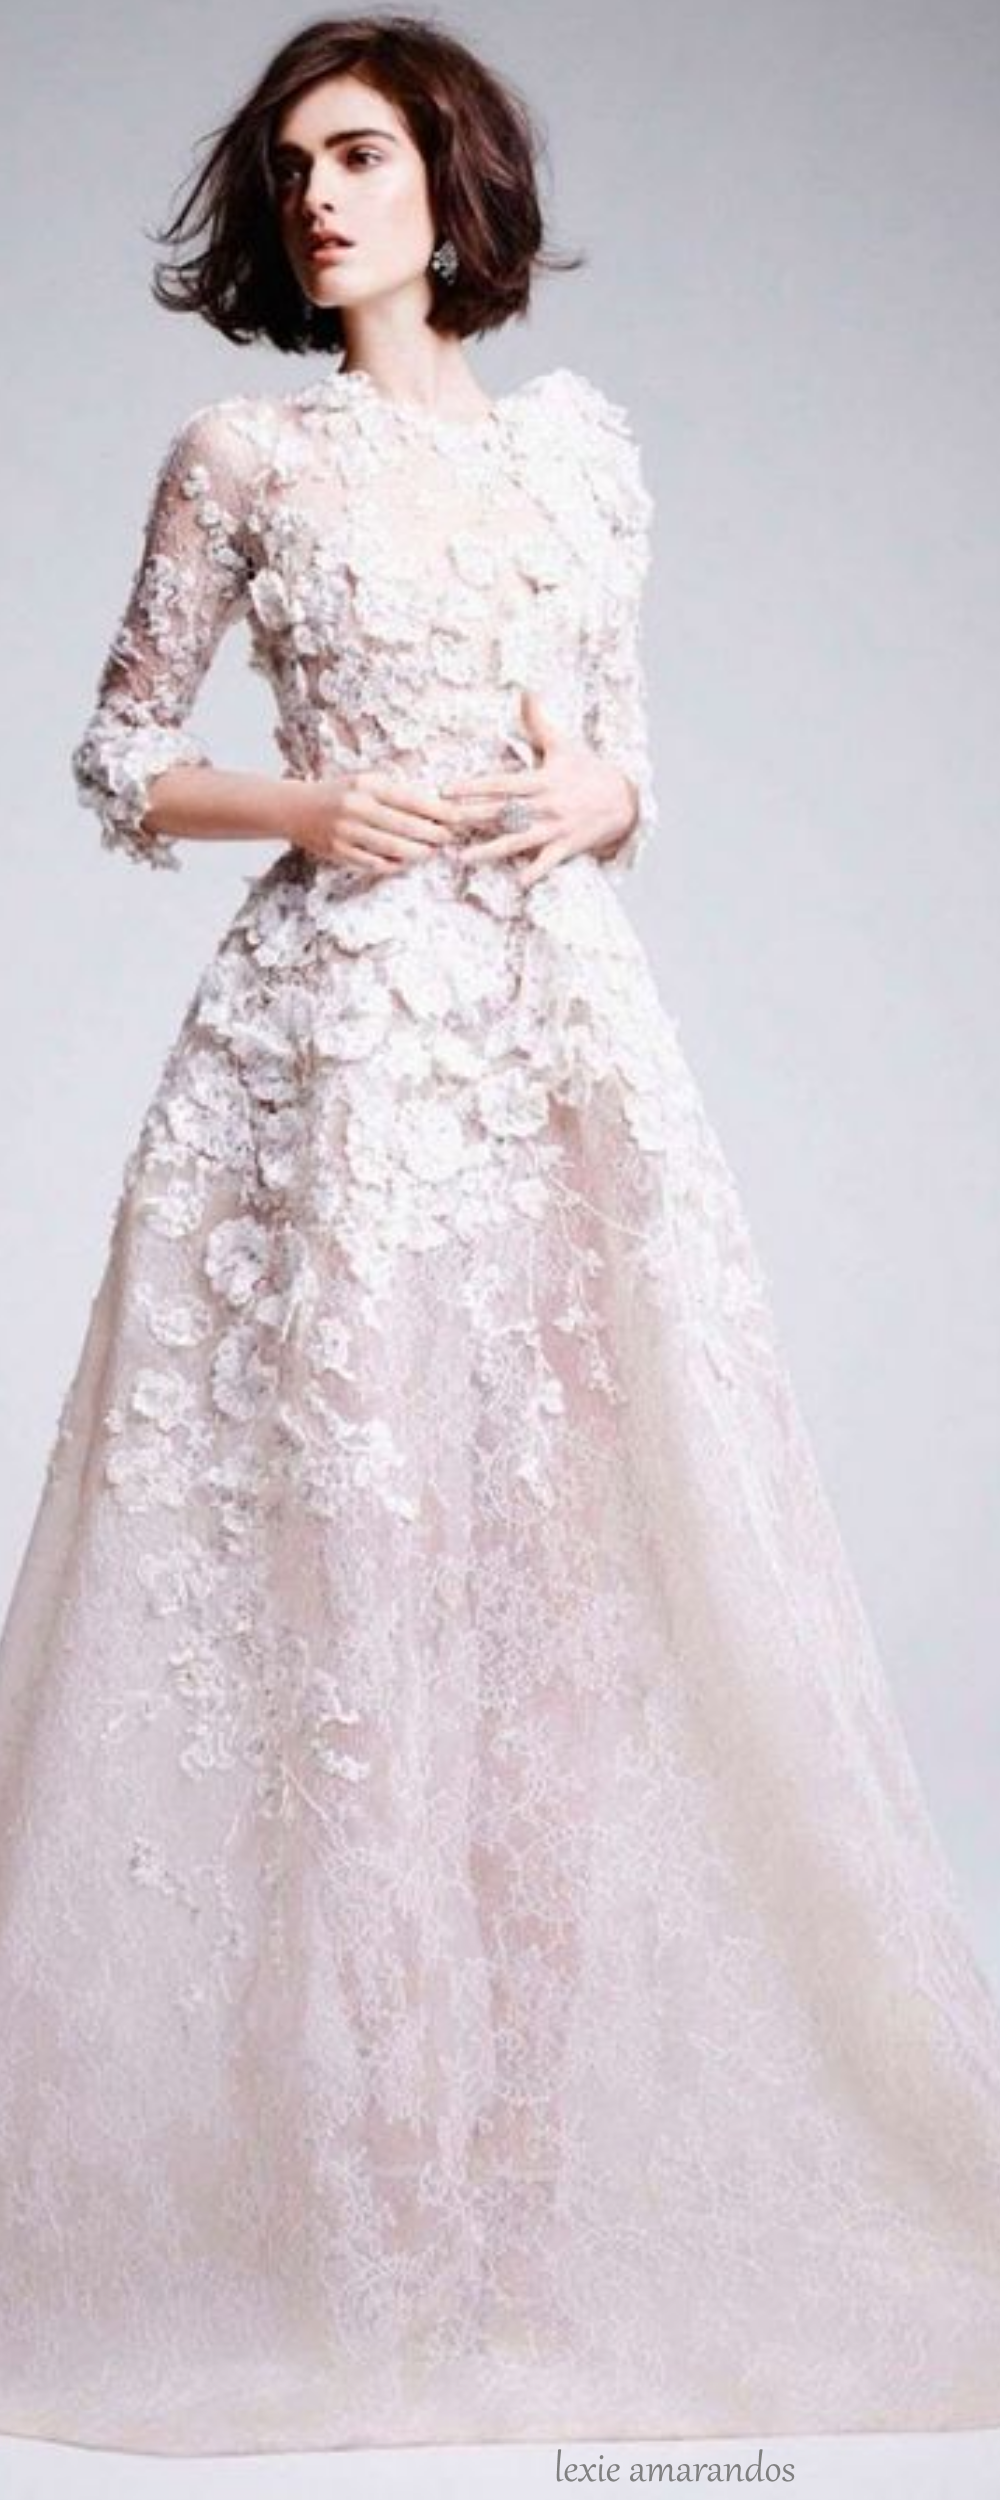 Elie Saab gown via @lexiea2. #gowns #ElieSaab | Couture chic ...